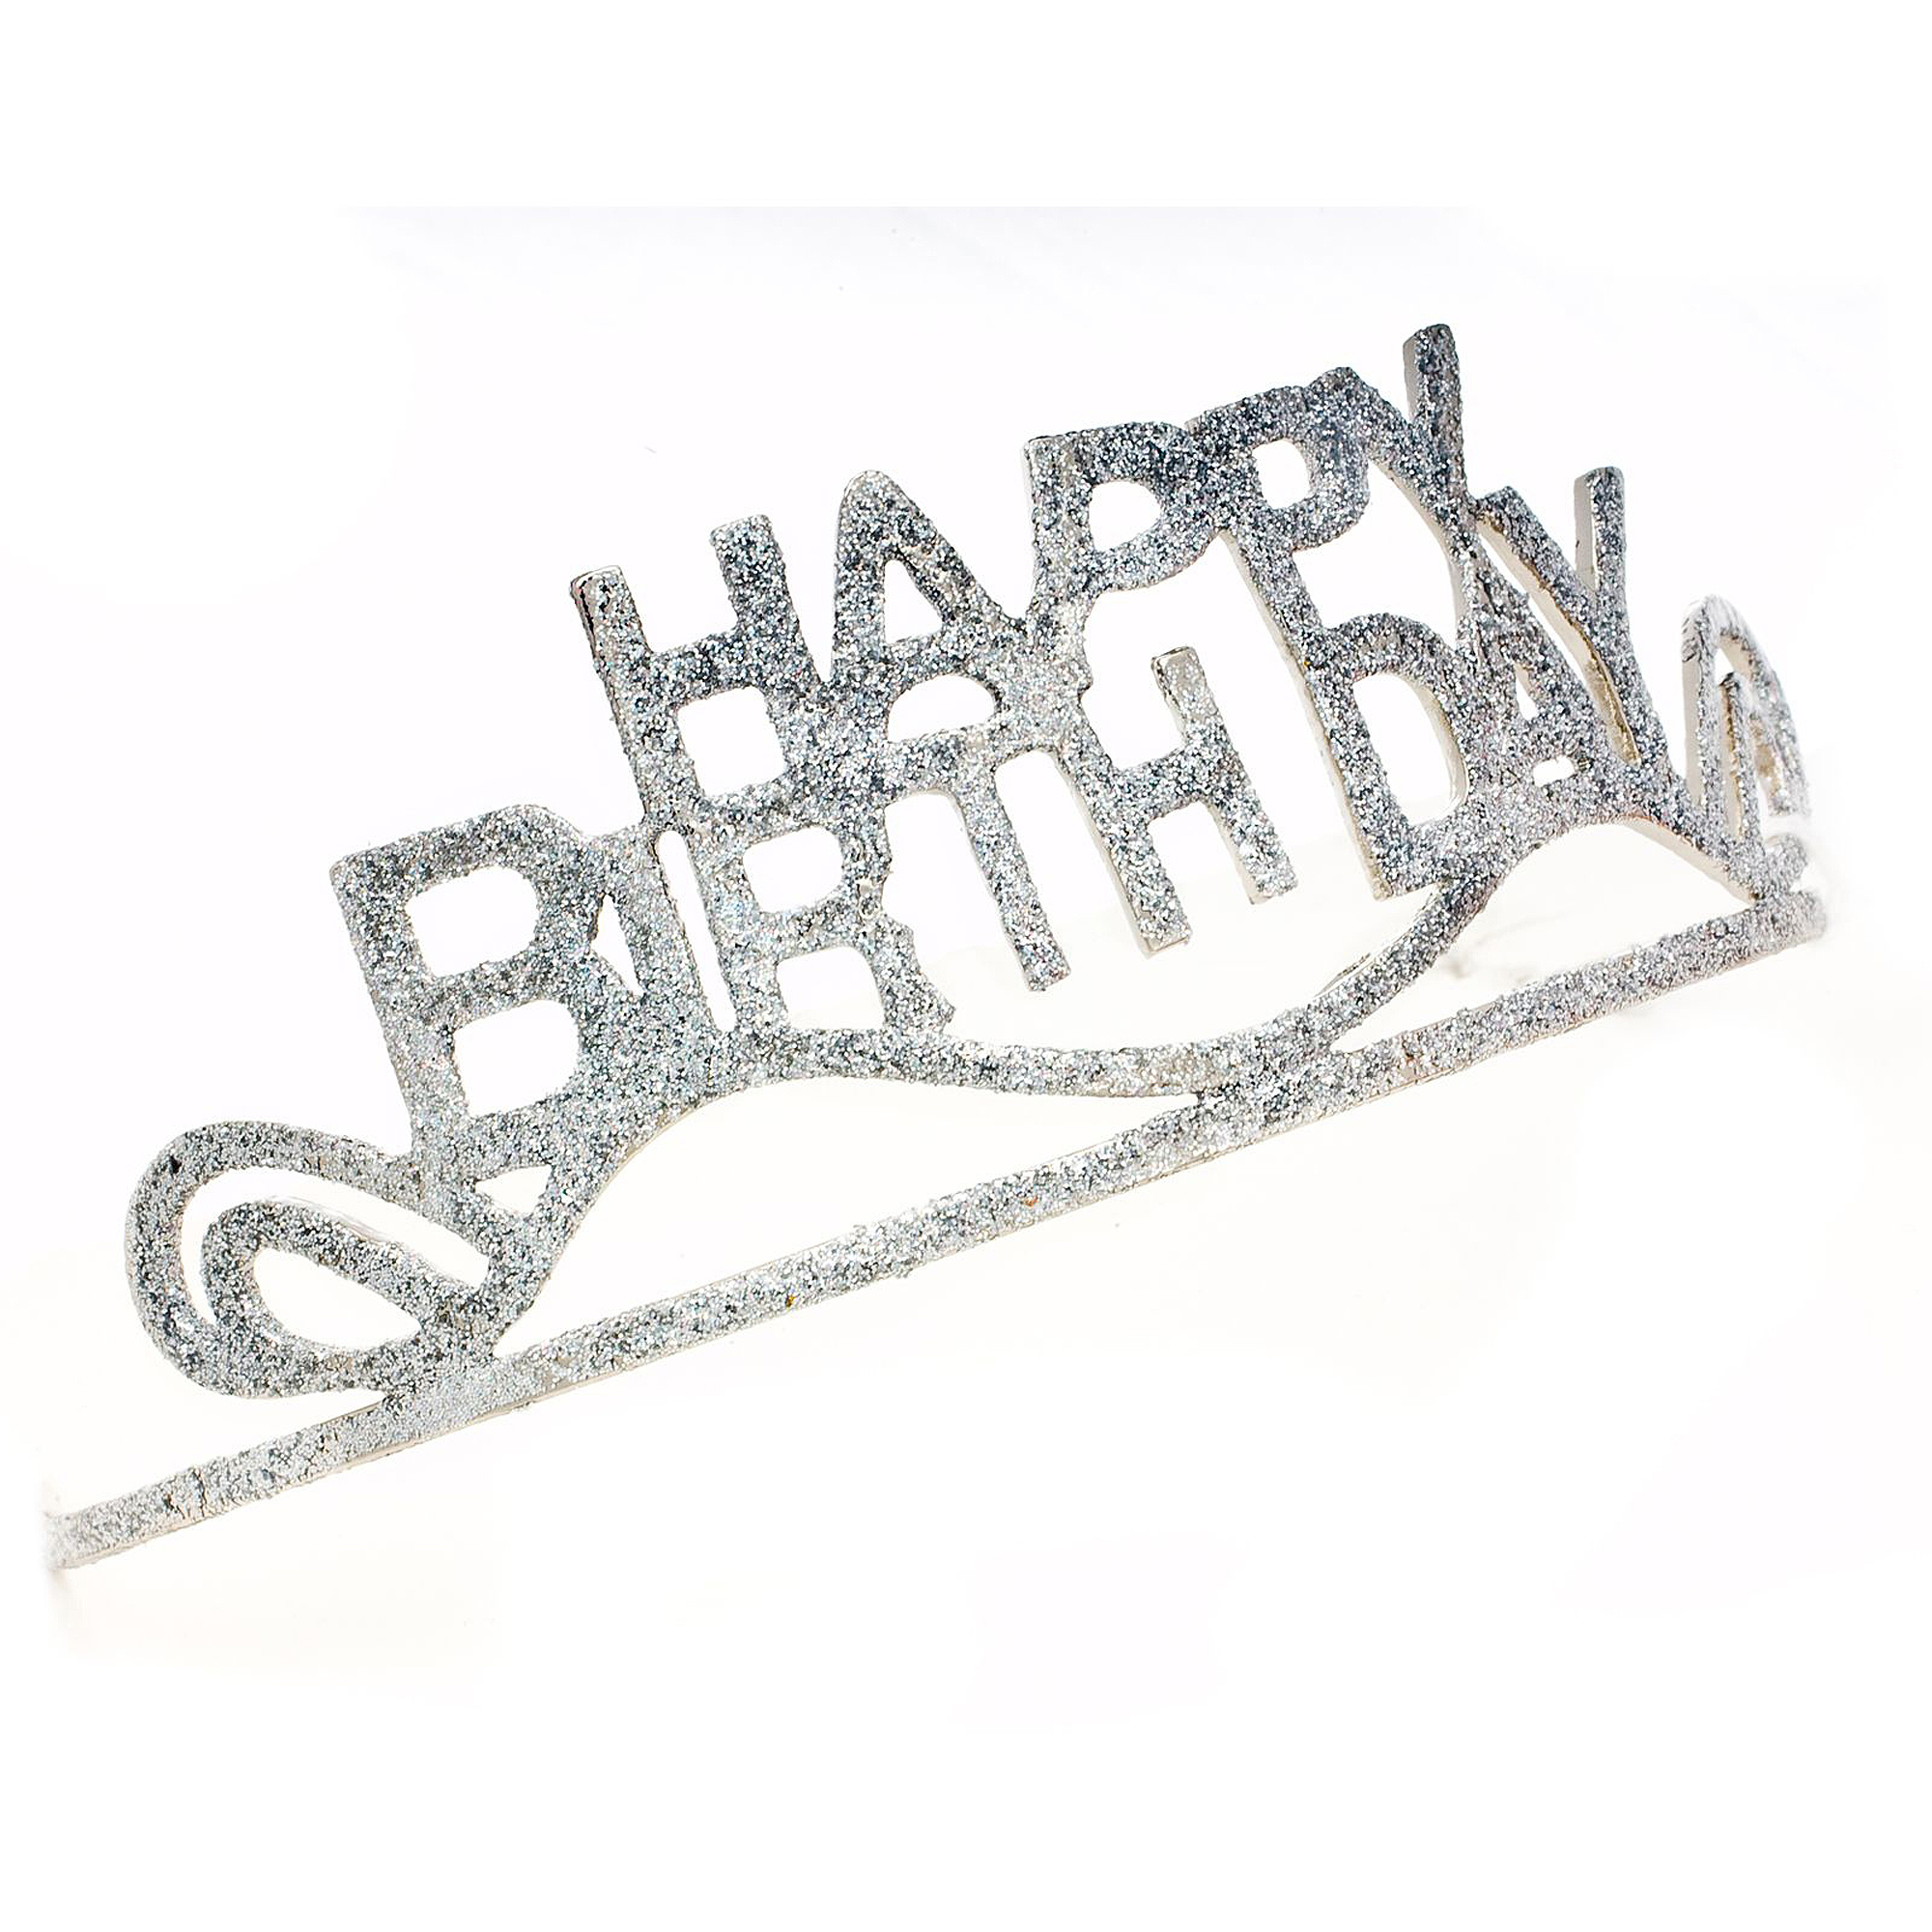 Sunnywood Birthday Babe Glitter Tiara Adult Costume Accessory